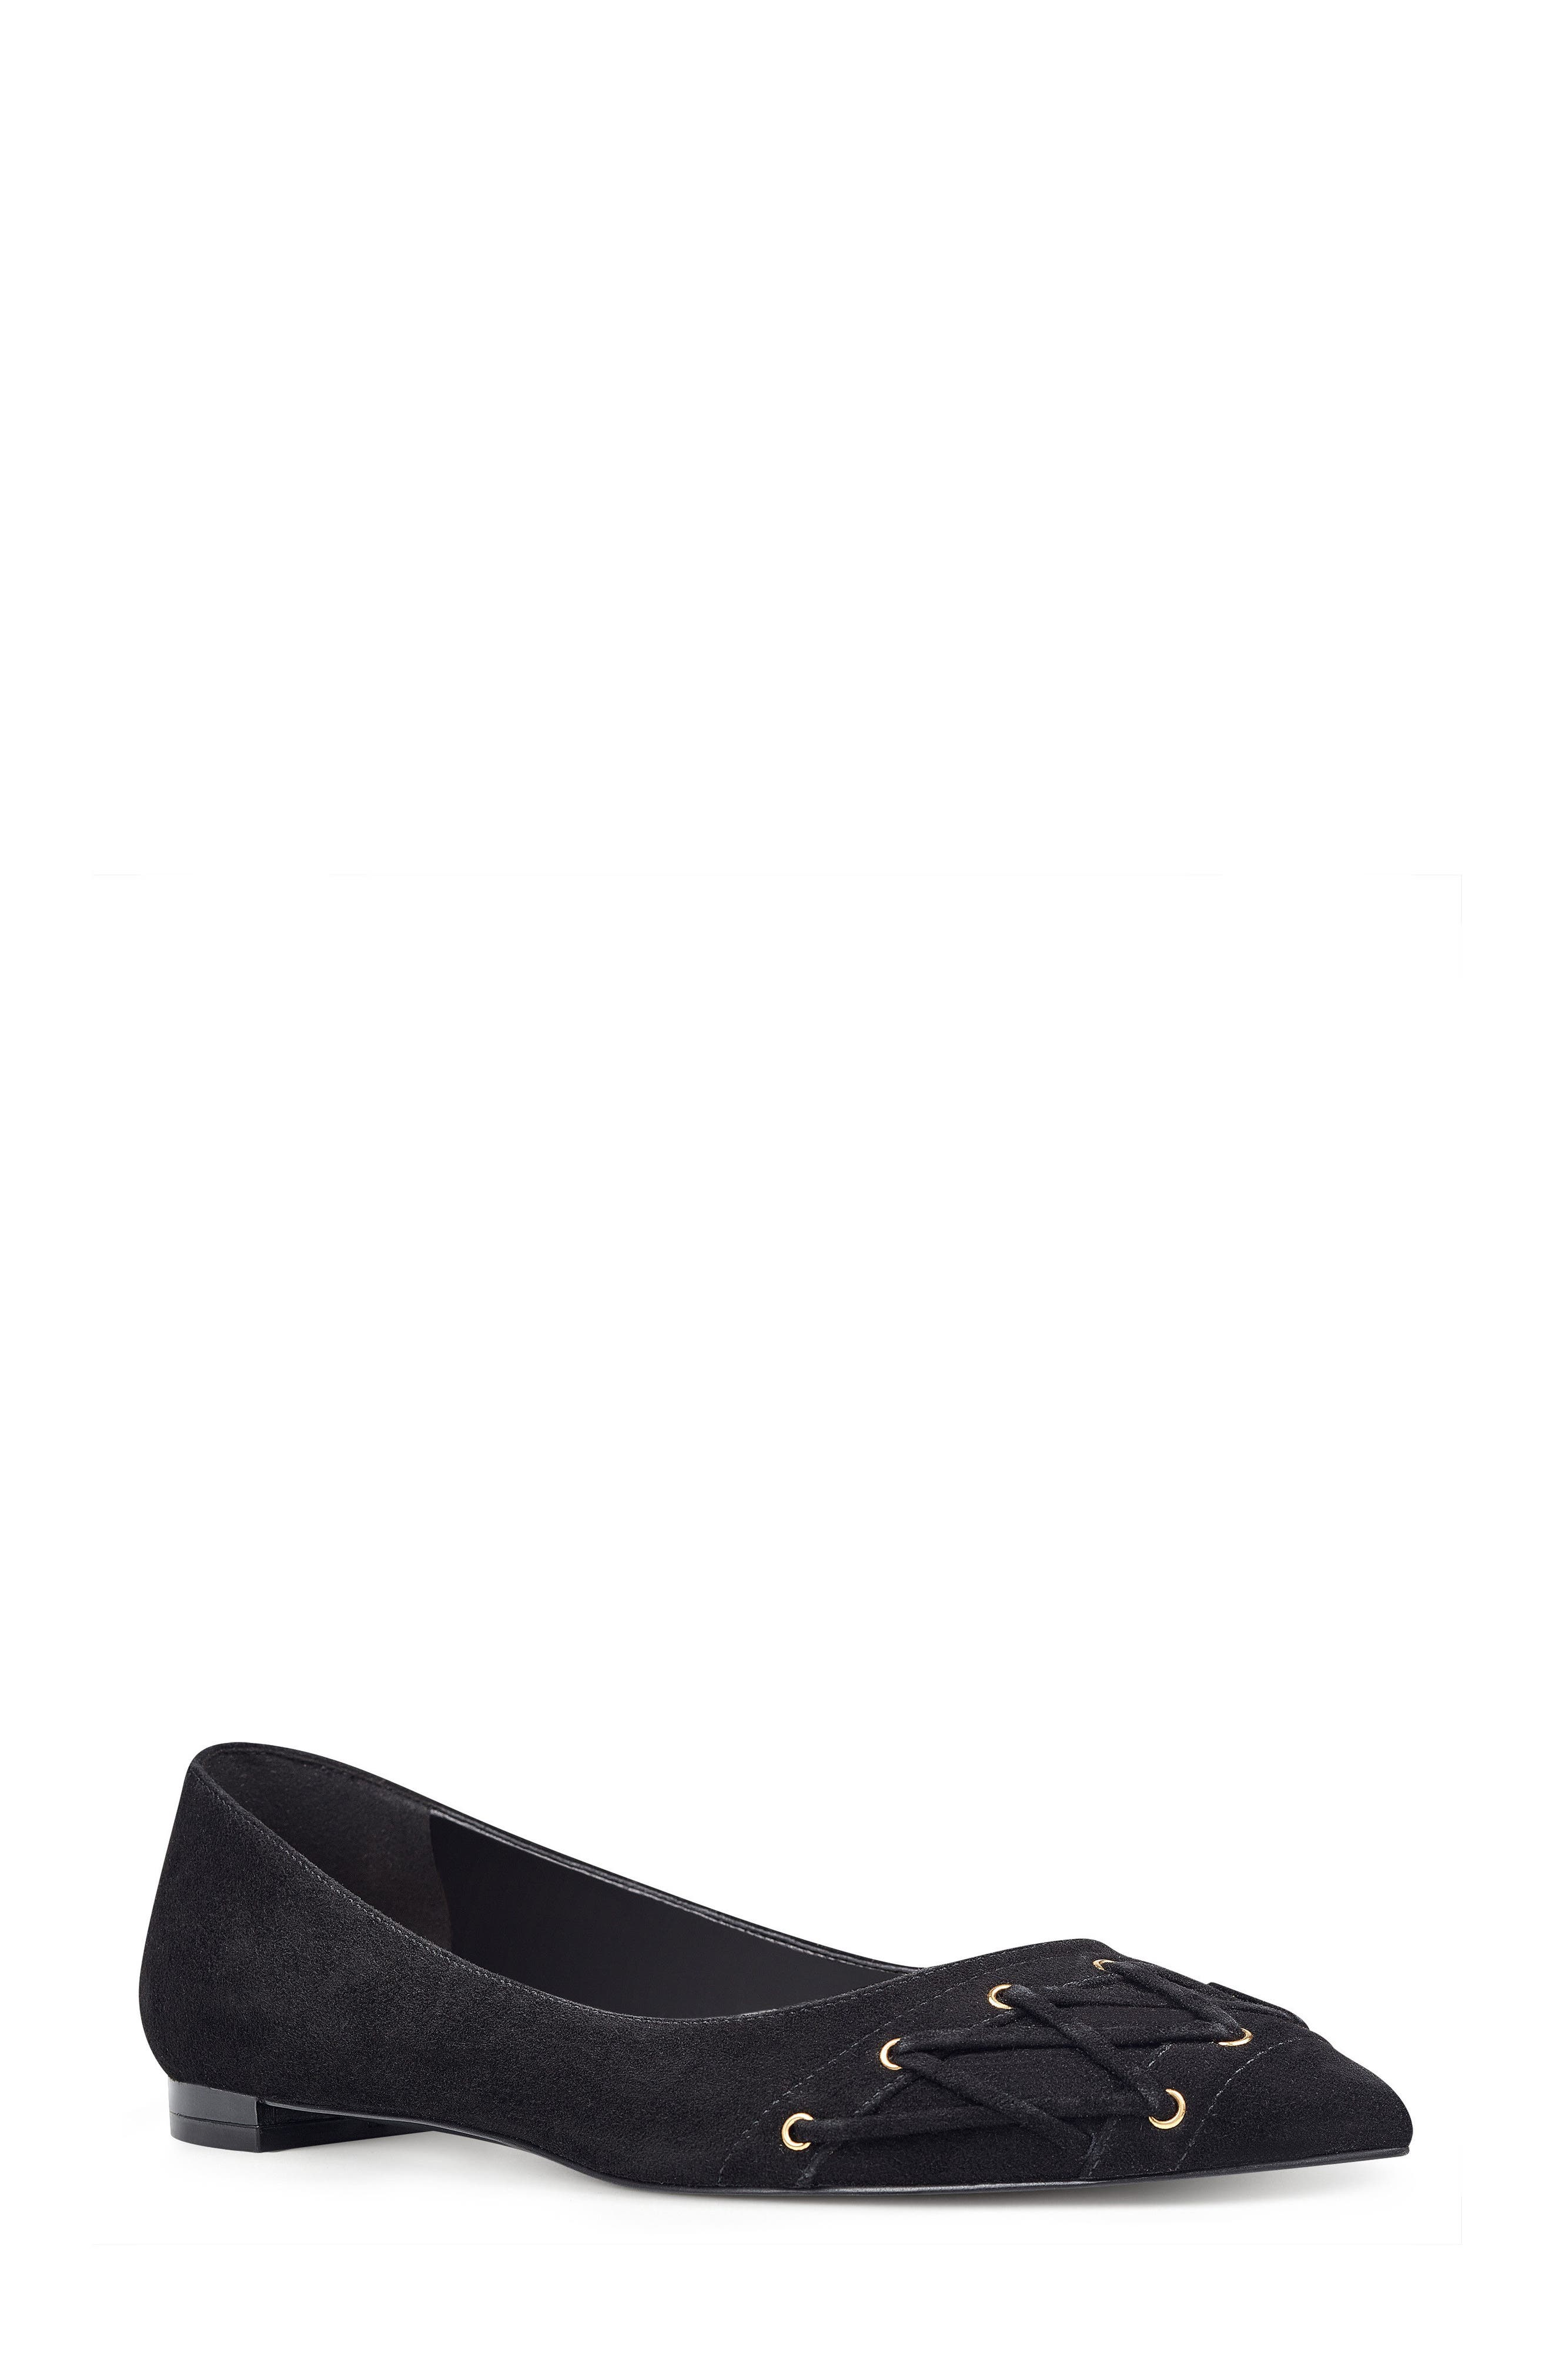 Main Image - Nine West Alyssum Corset Skimmer Flat (Women)